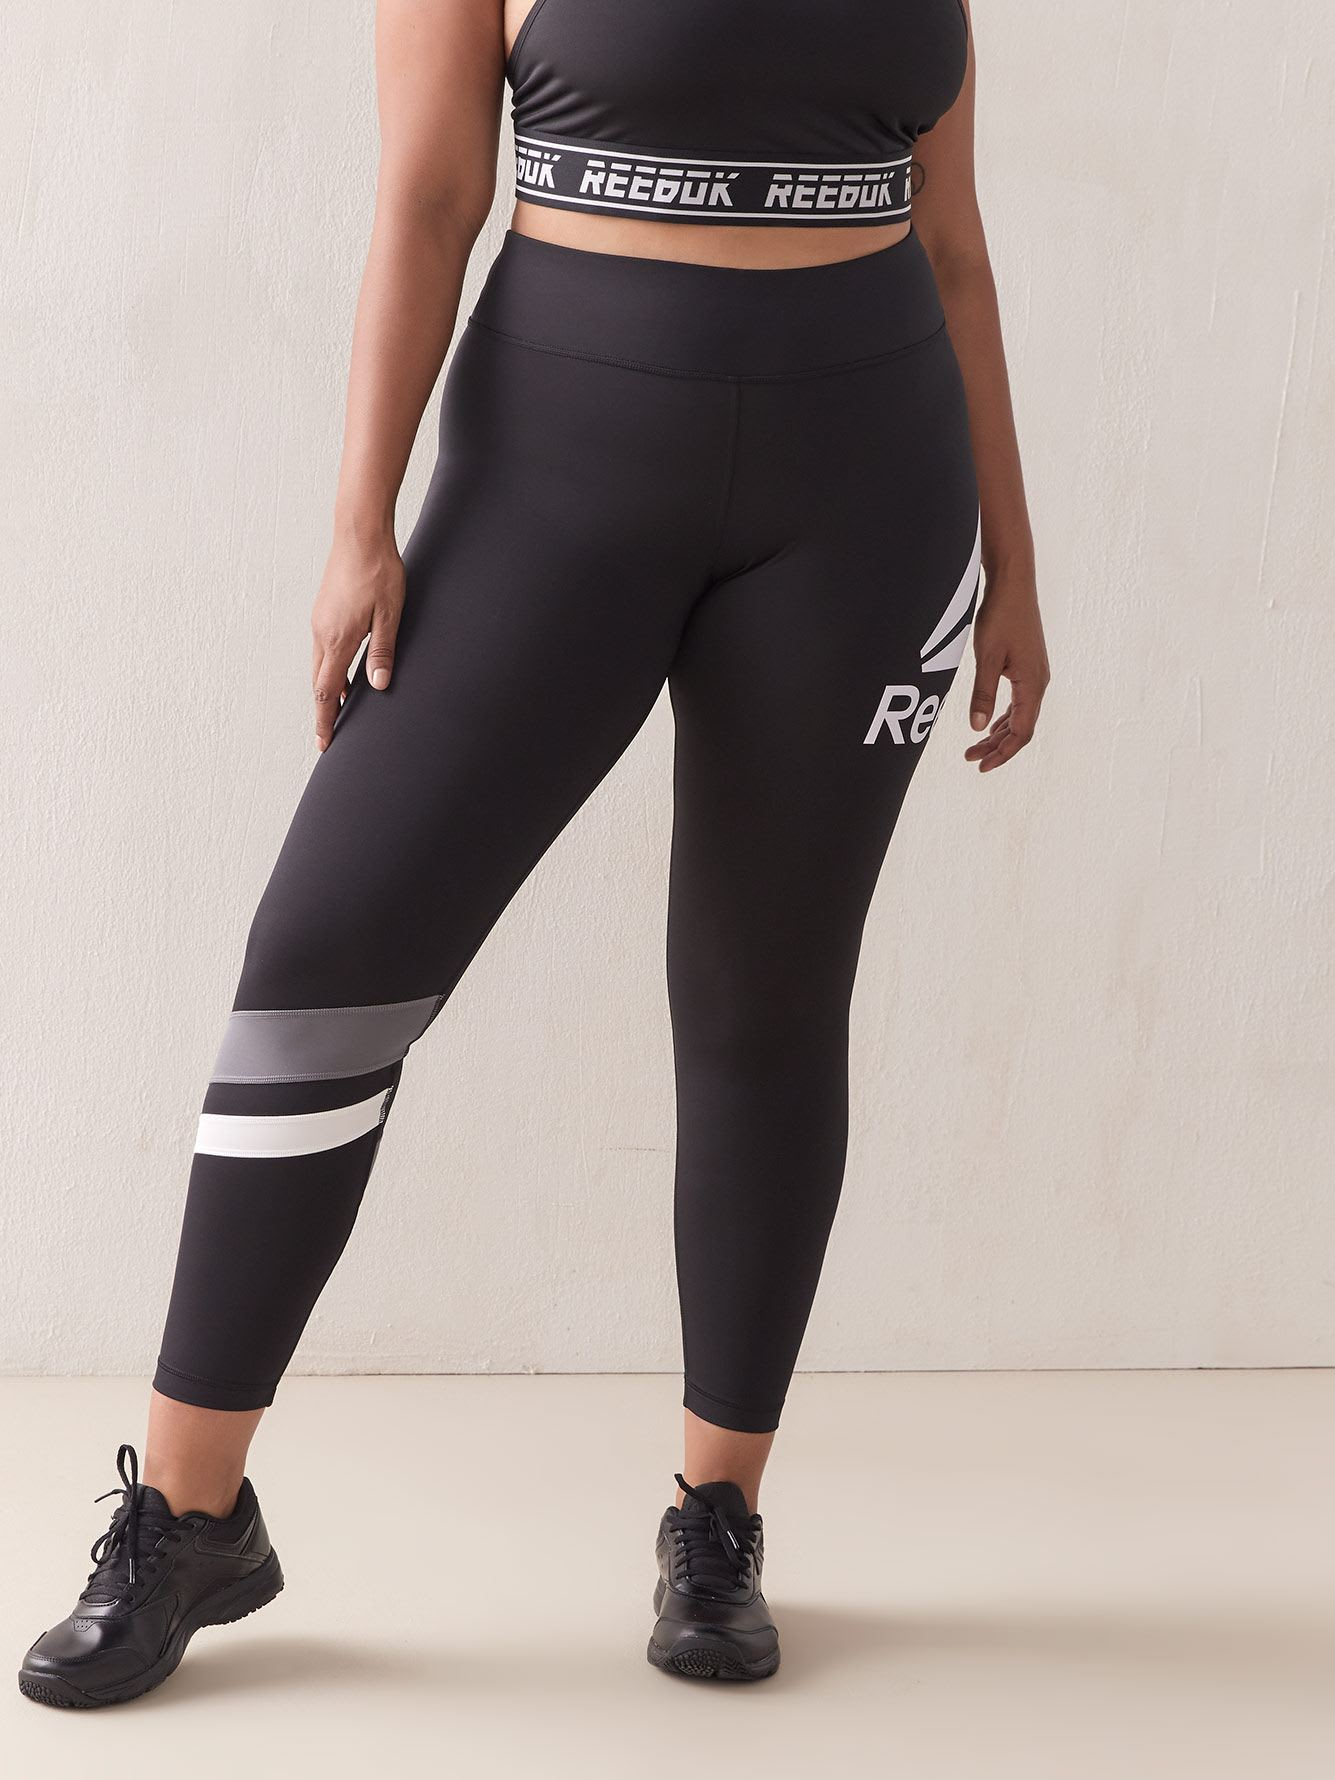 Big Delta Black Legging - Reebok